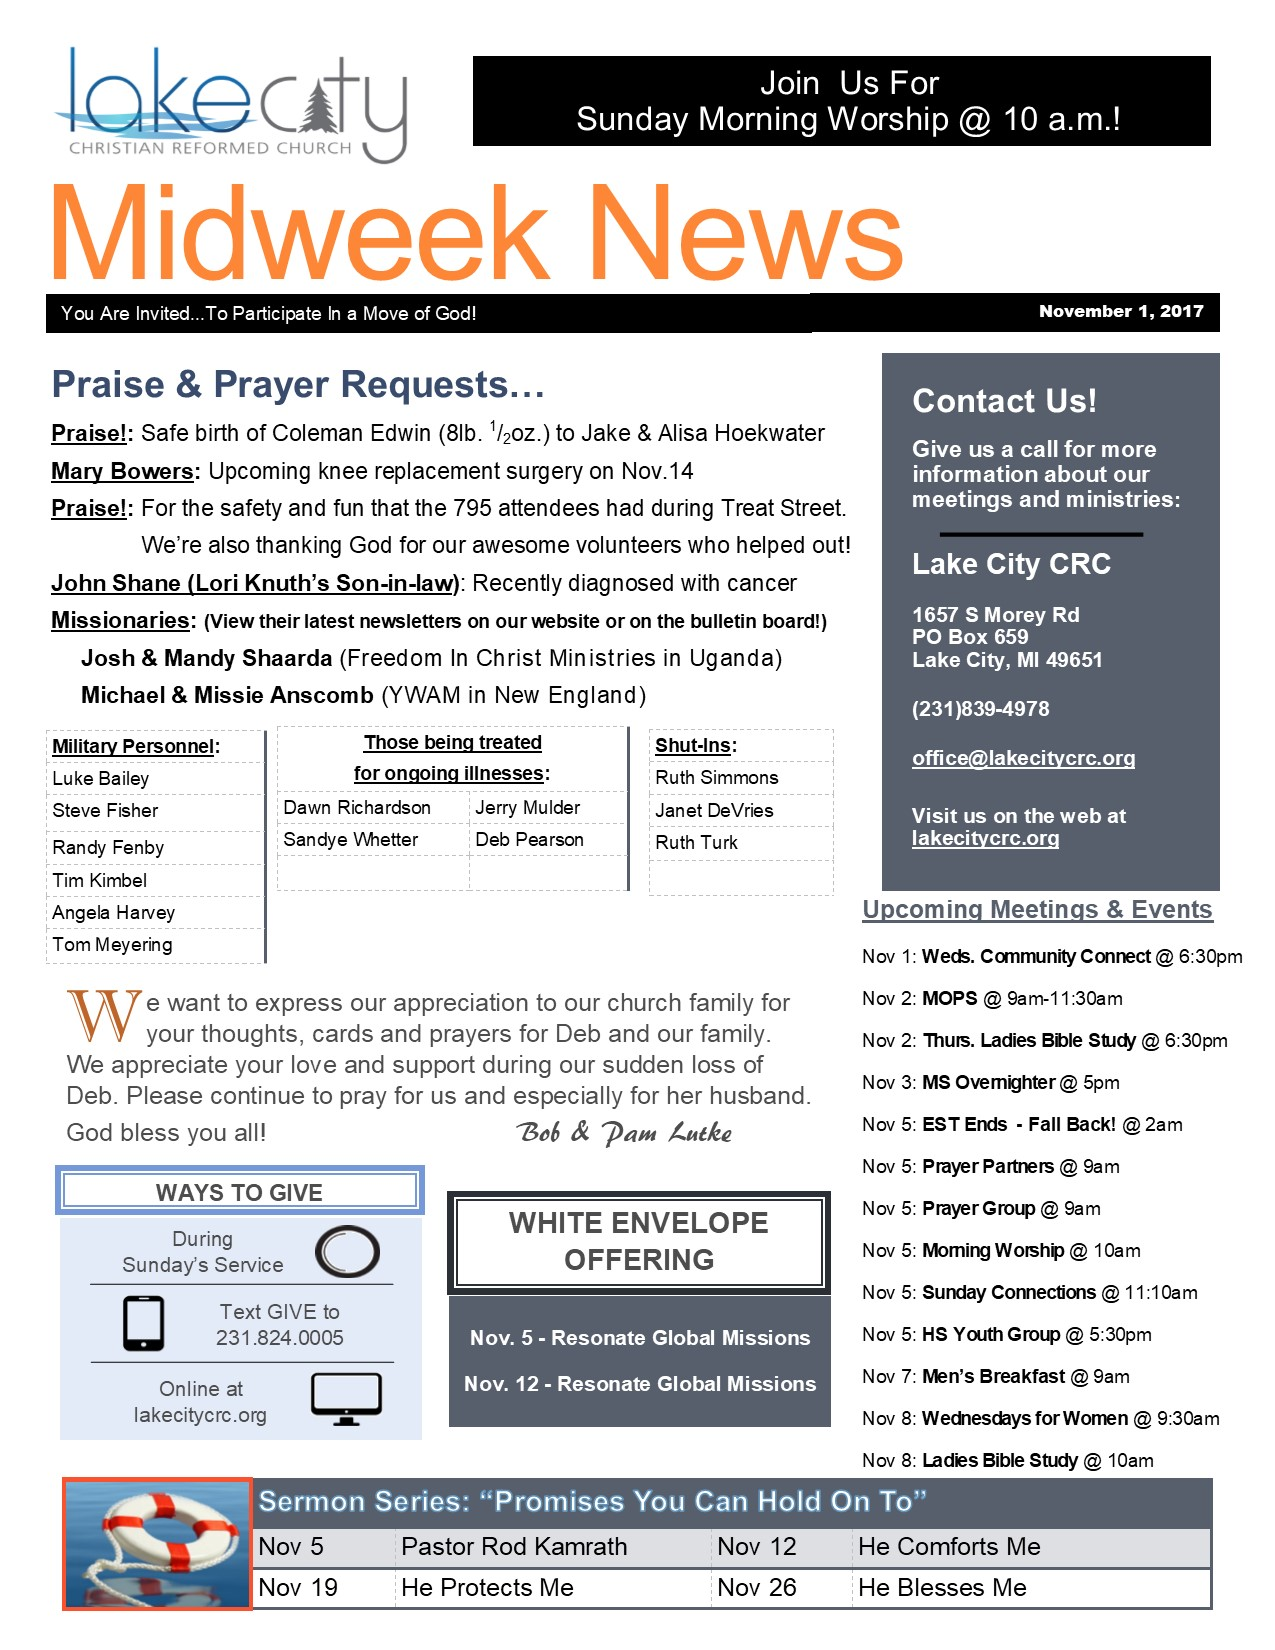 November 1, 2017 Midweek News